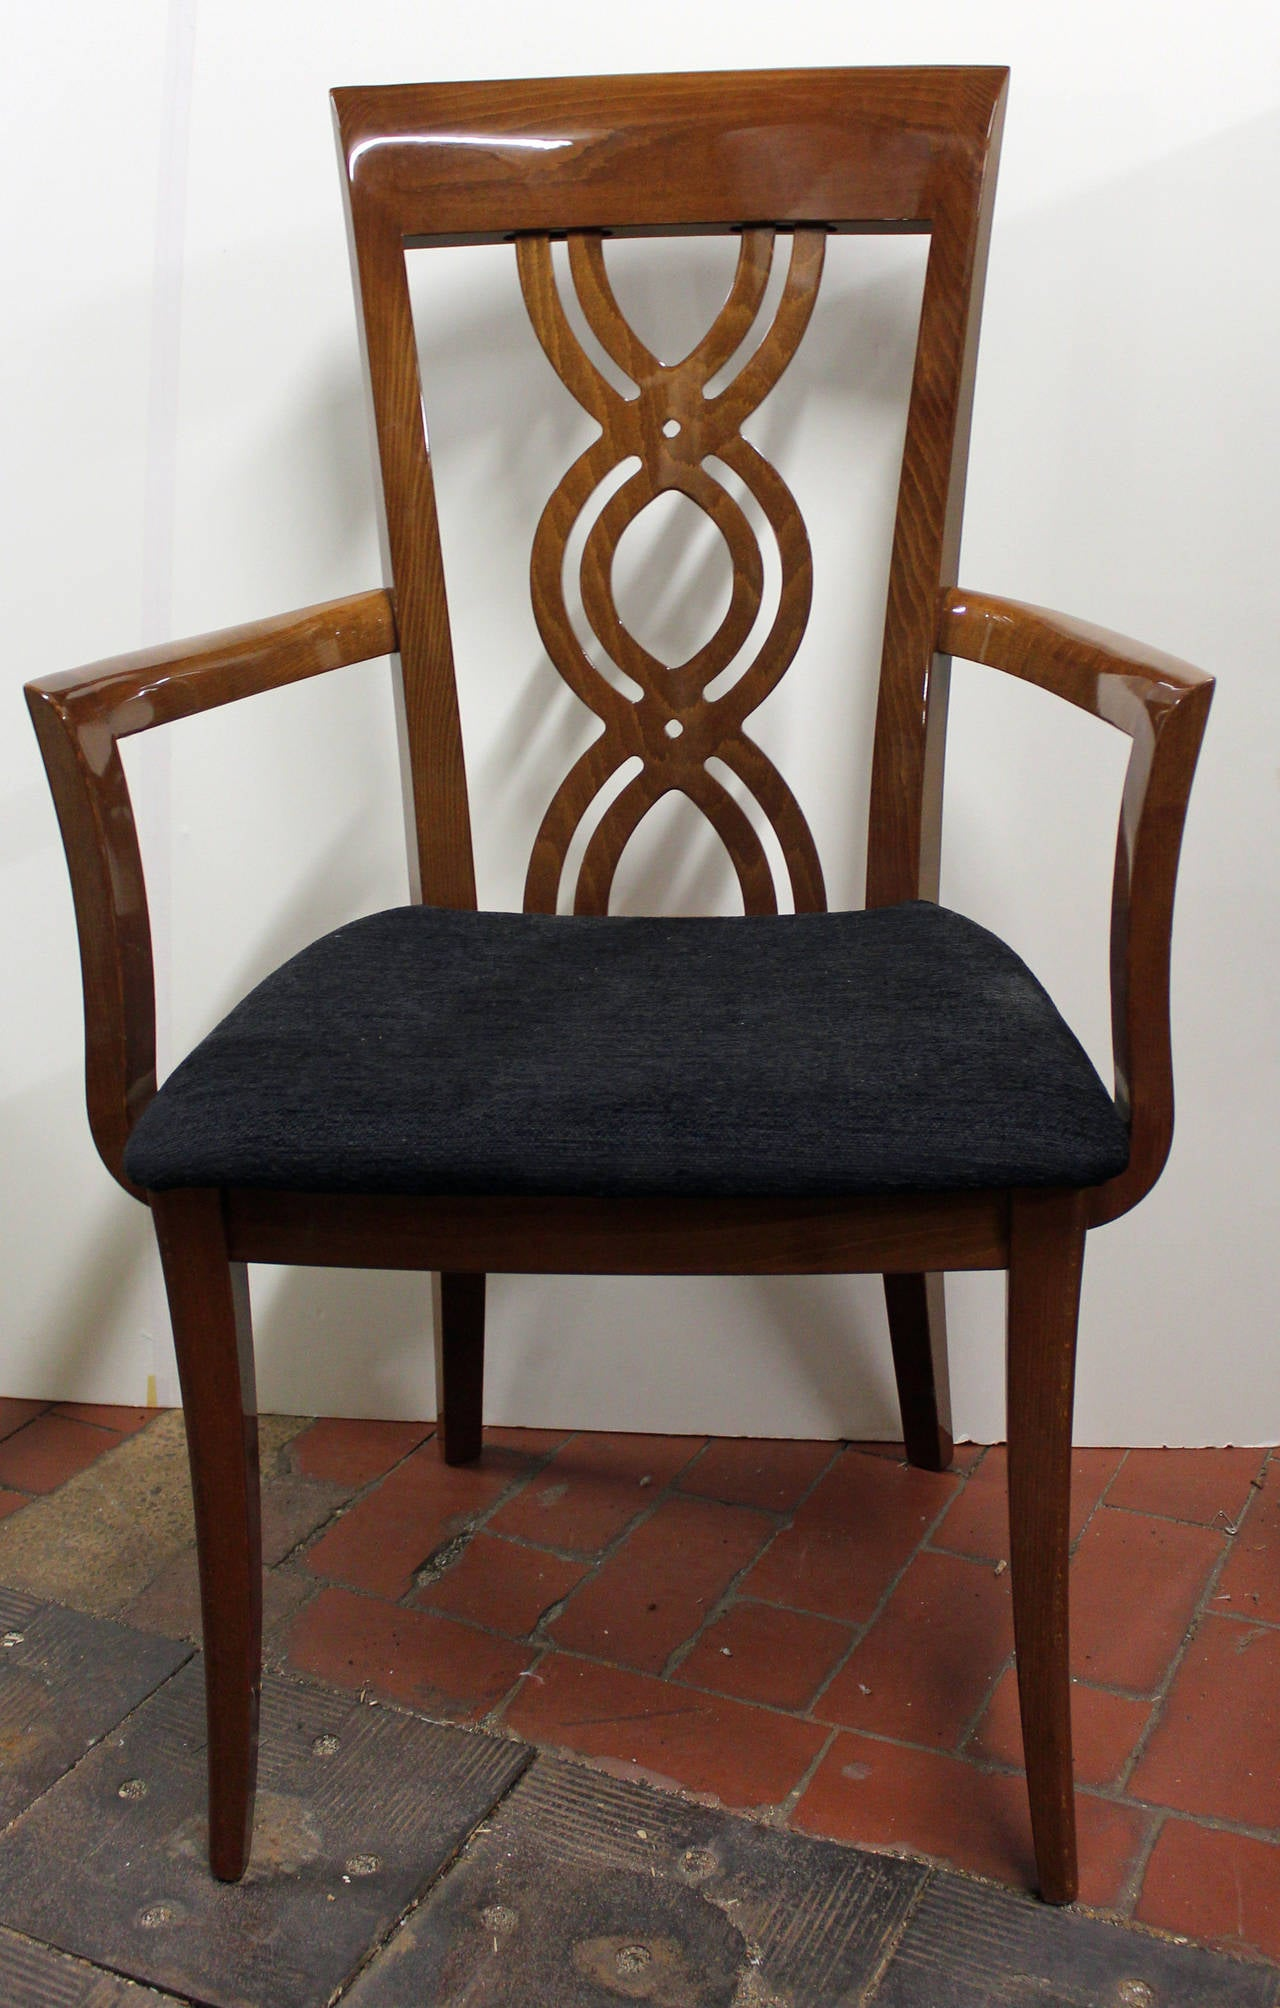 Pair Of Elegant Highly Polished Dining Chairs For Sale At